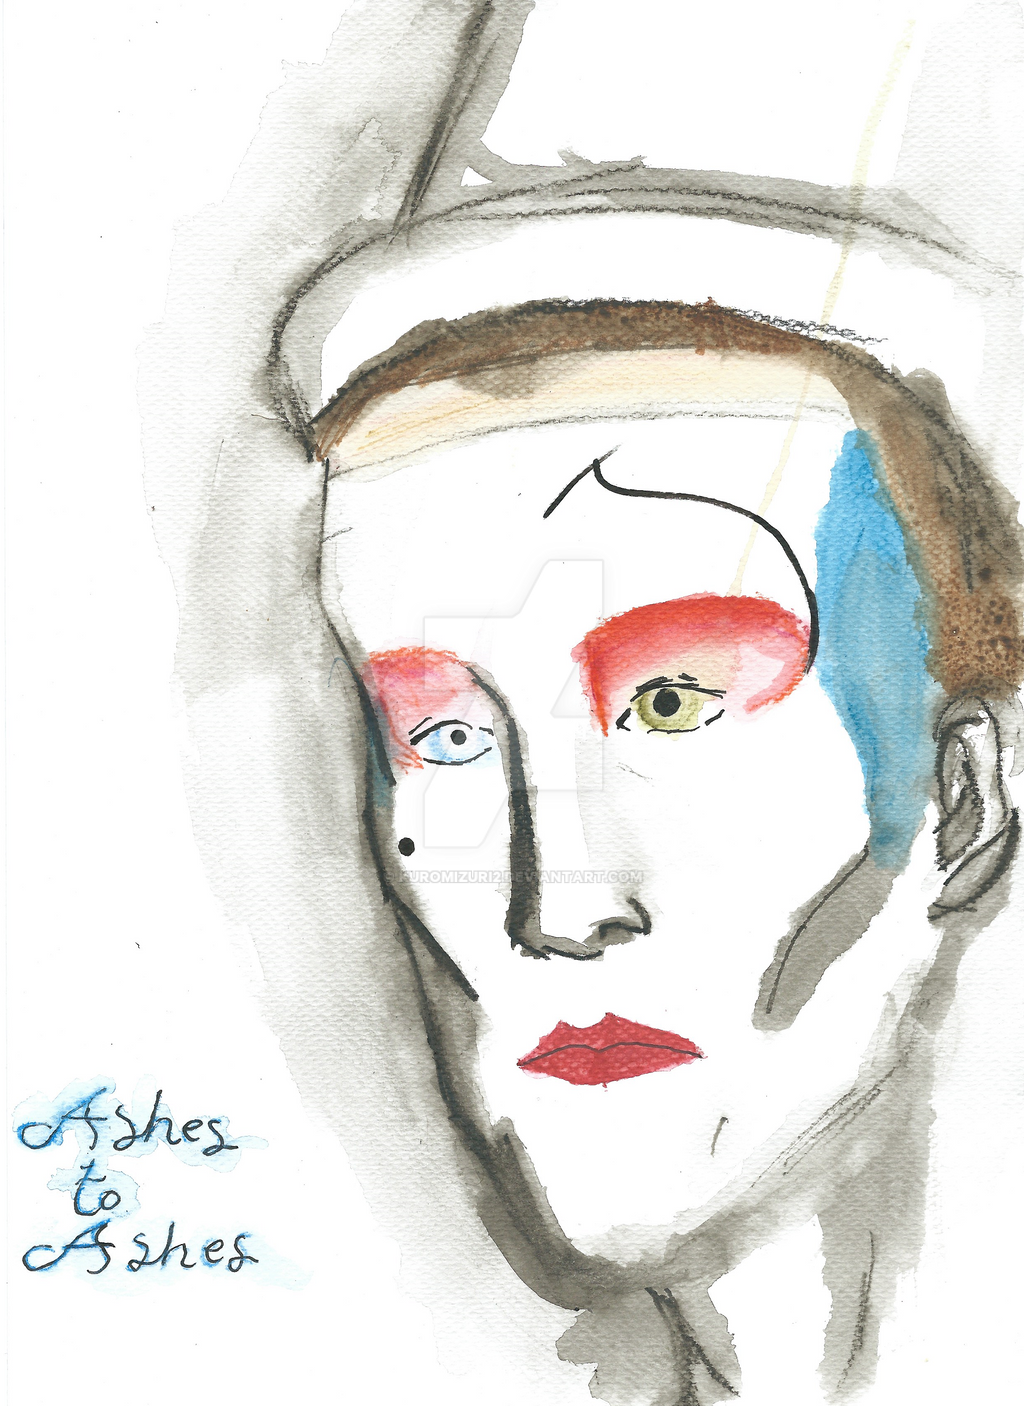 David Bowie Ashes to Ashes, watercolour pencils by